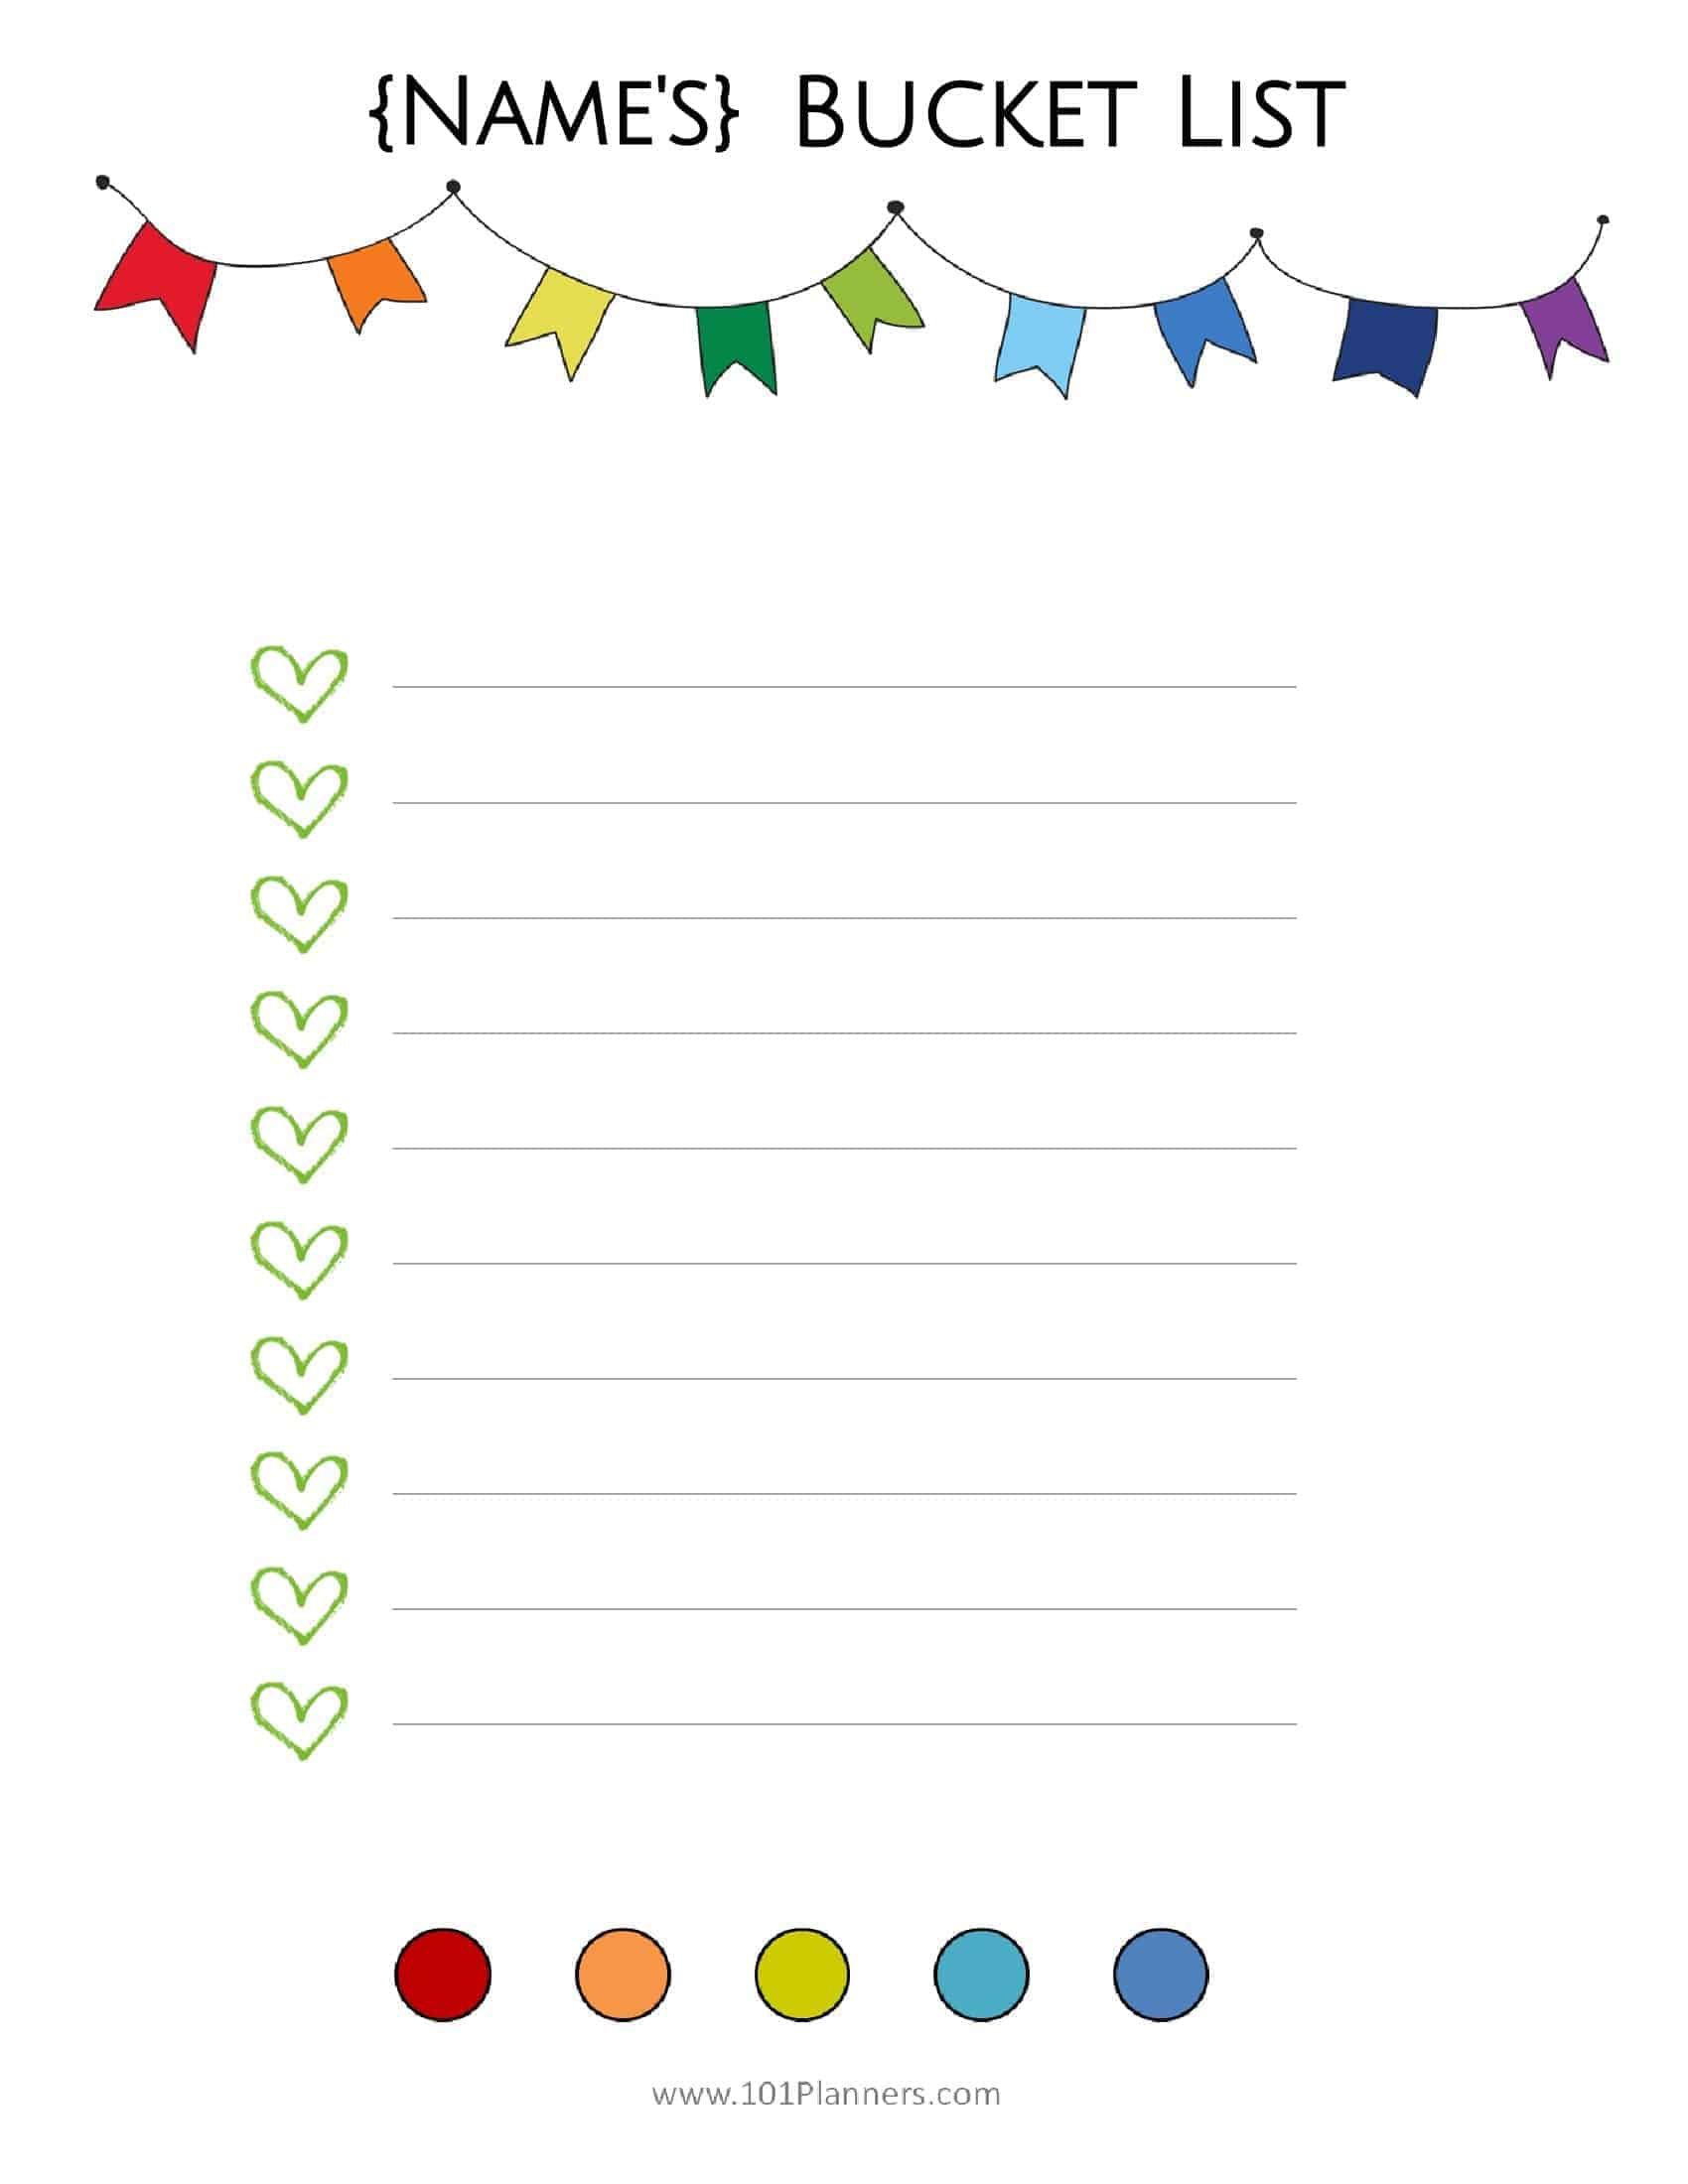 Free Bucket List Printable